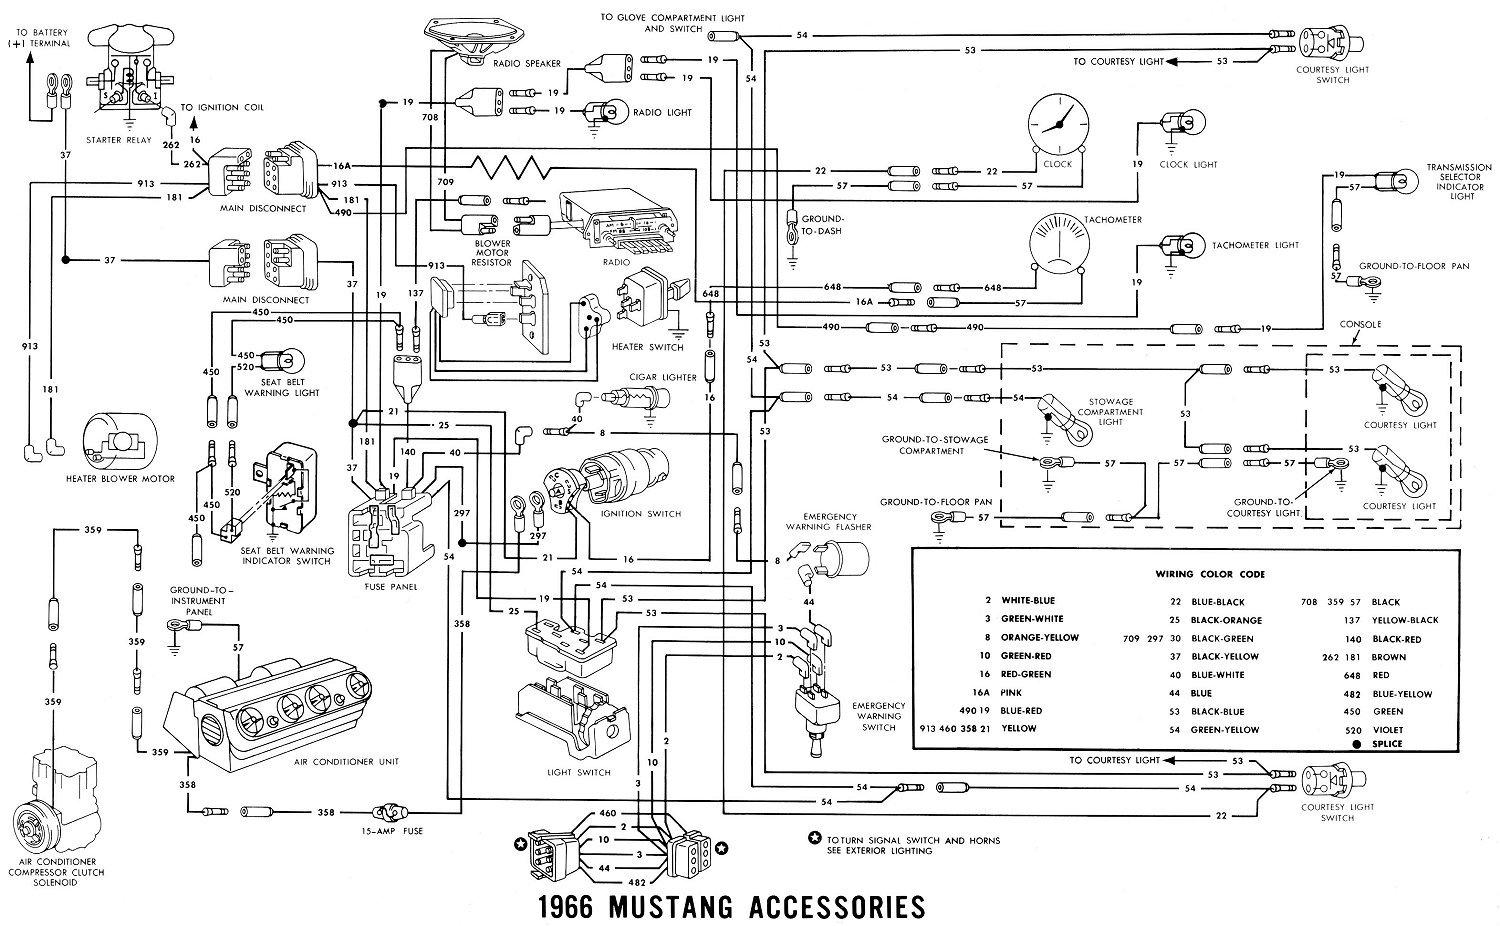 66acces1 vintage mustang wiring diagrams 1970 mustang wiring diagram pdf at bakdesigns.co